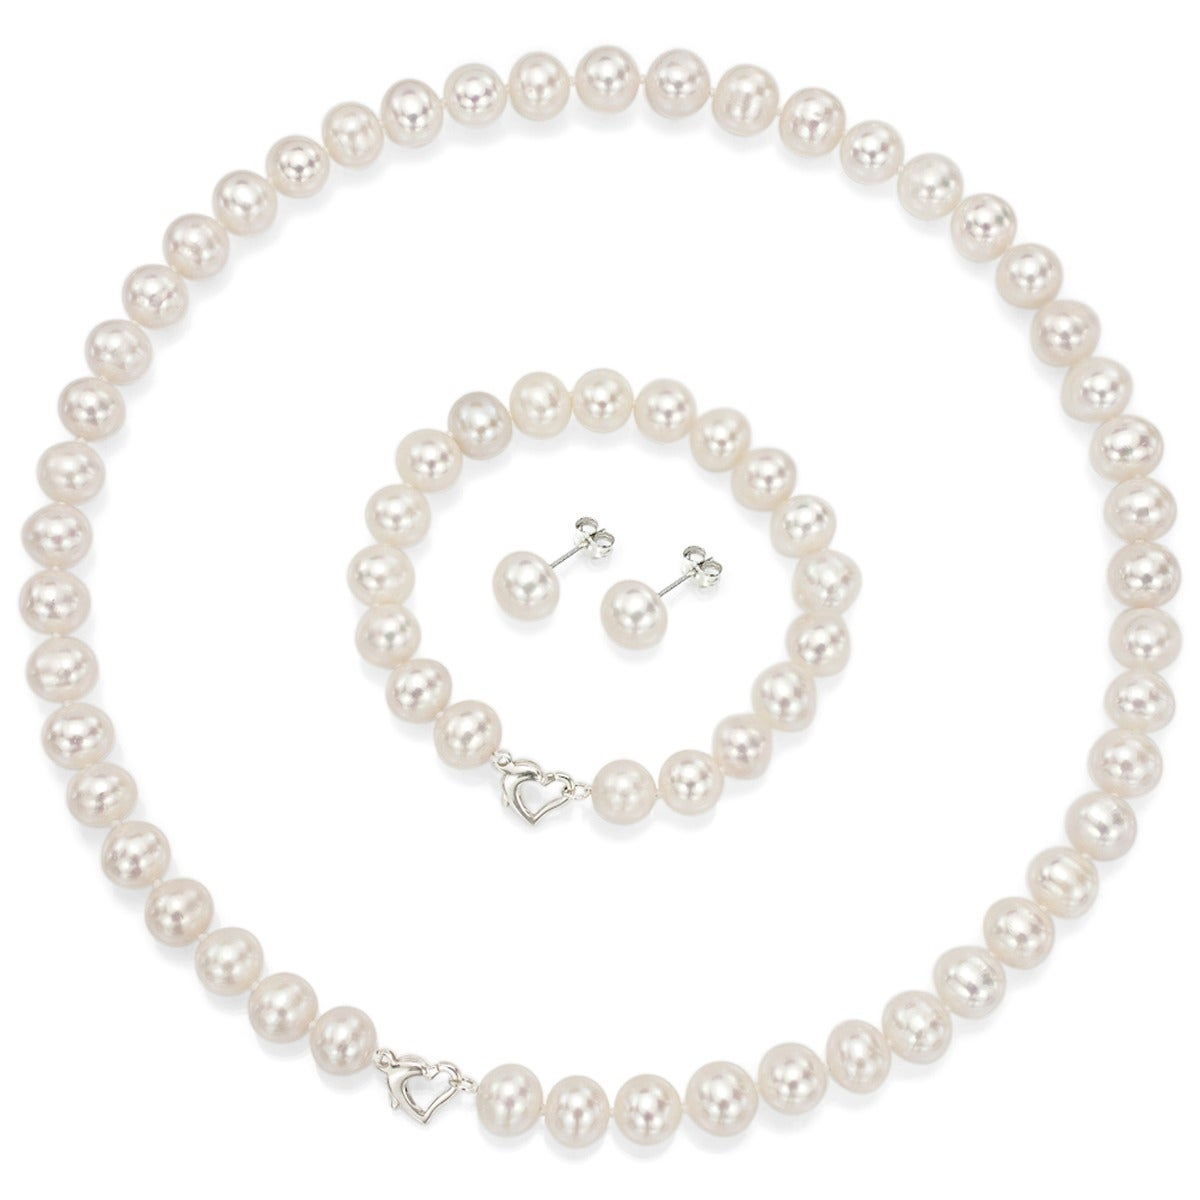 Davonna Sterling Silver Freshwater Pearl Necklace Bracelet And Earring Set 18 White On Free Shipping Today 4846523